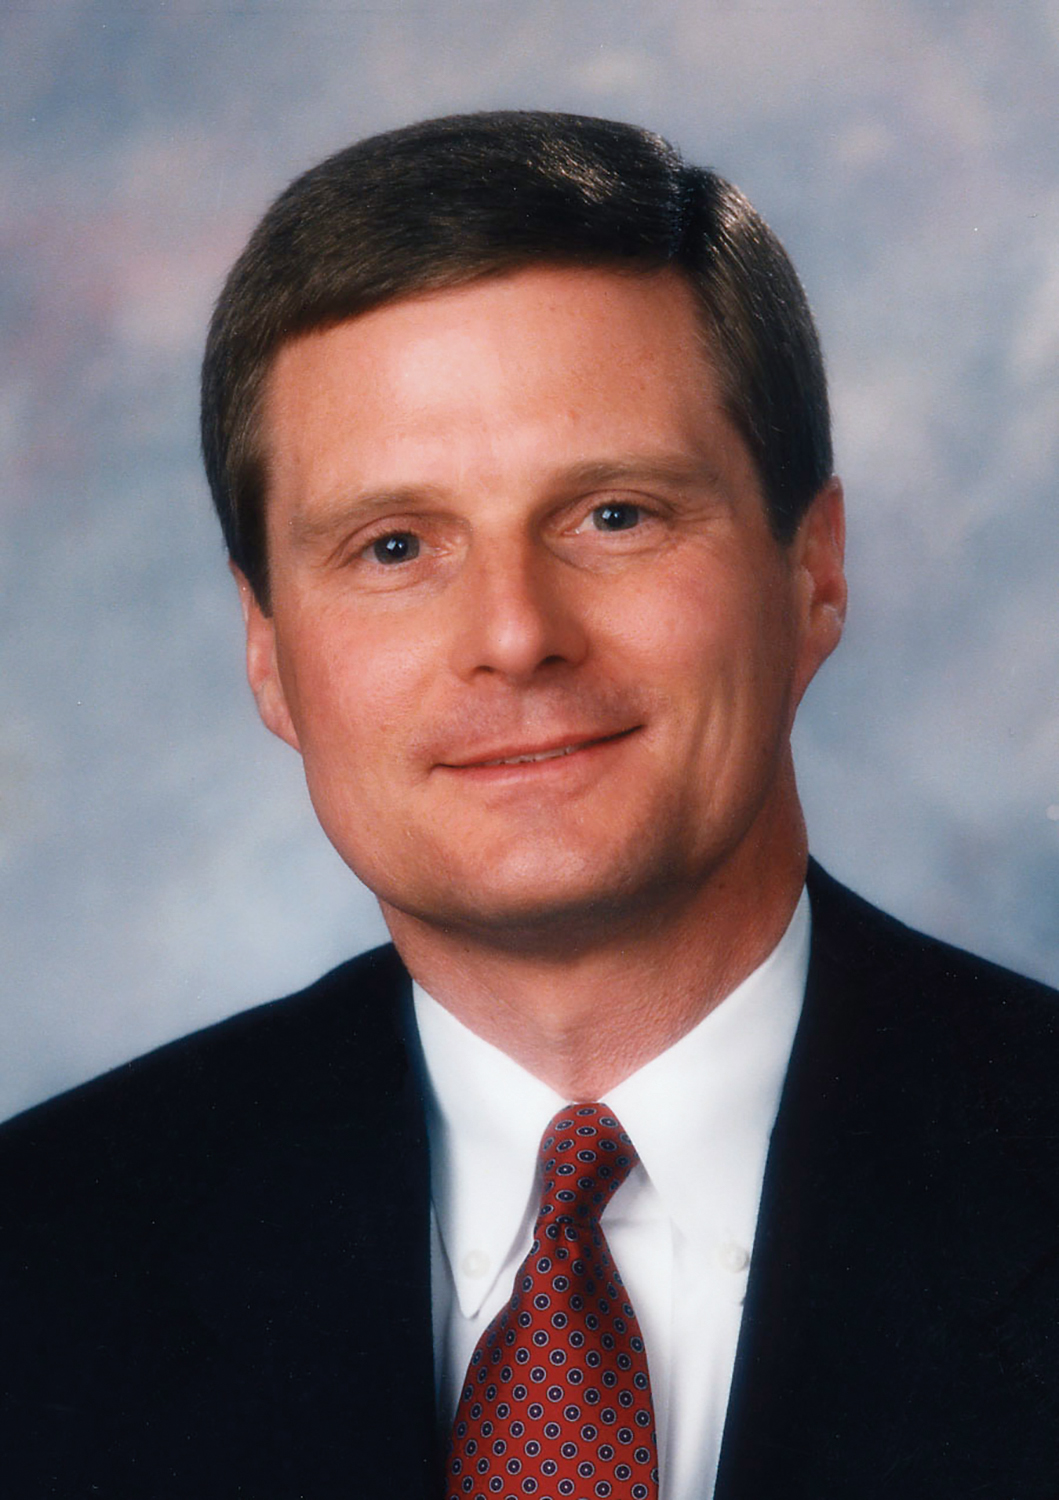 Portrait photo of Elder David A. Bednar